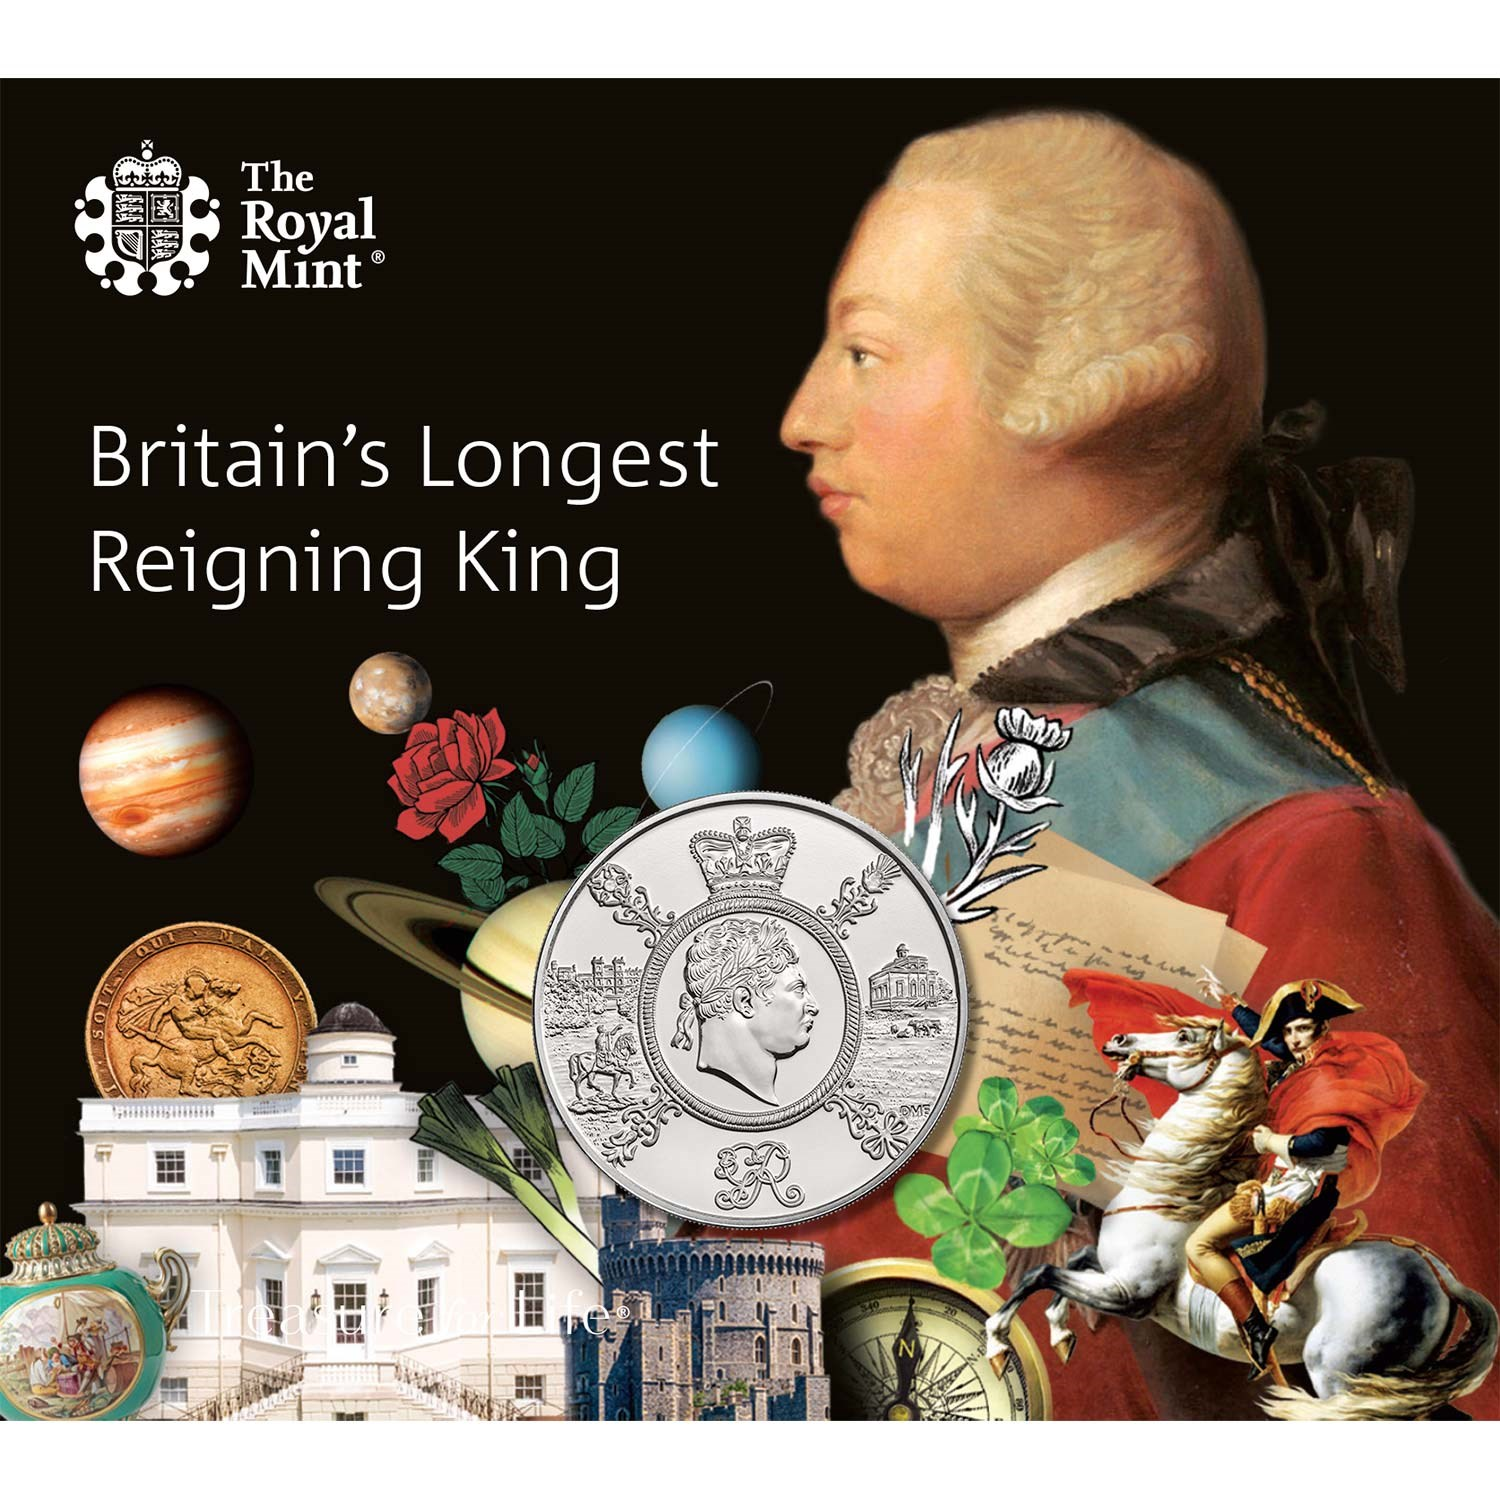 Reign of George III 2020 UK £5 BU Coin